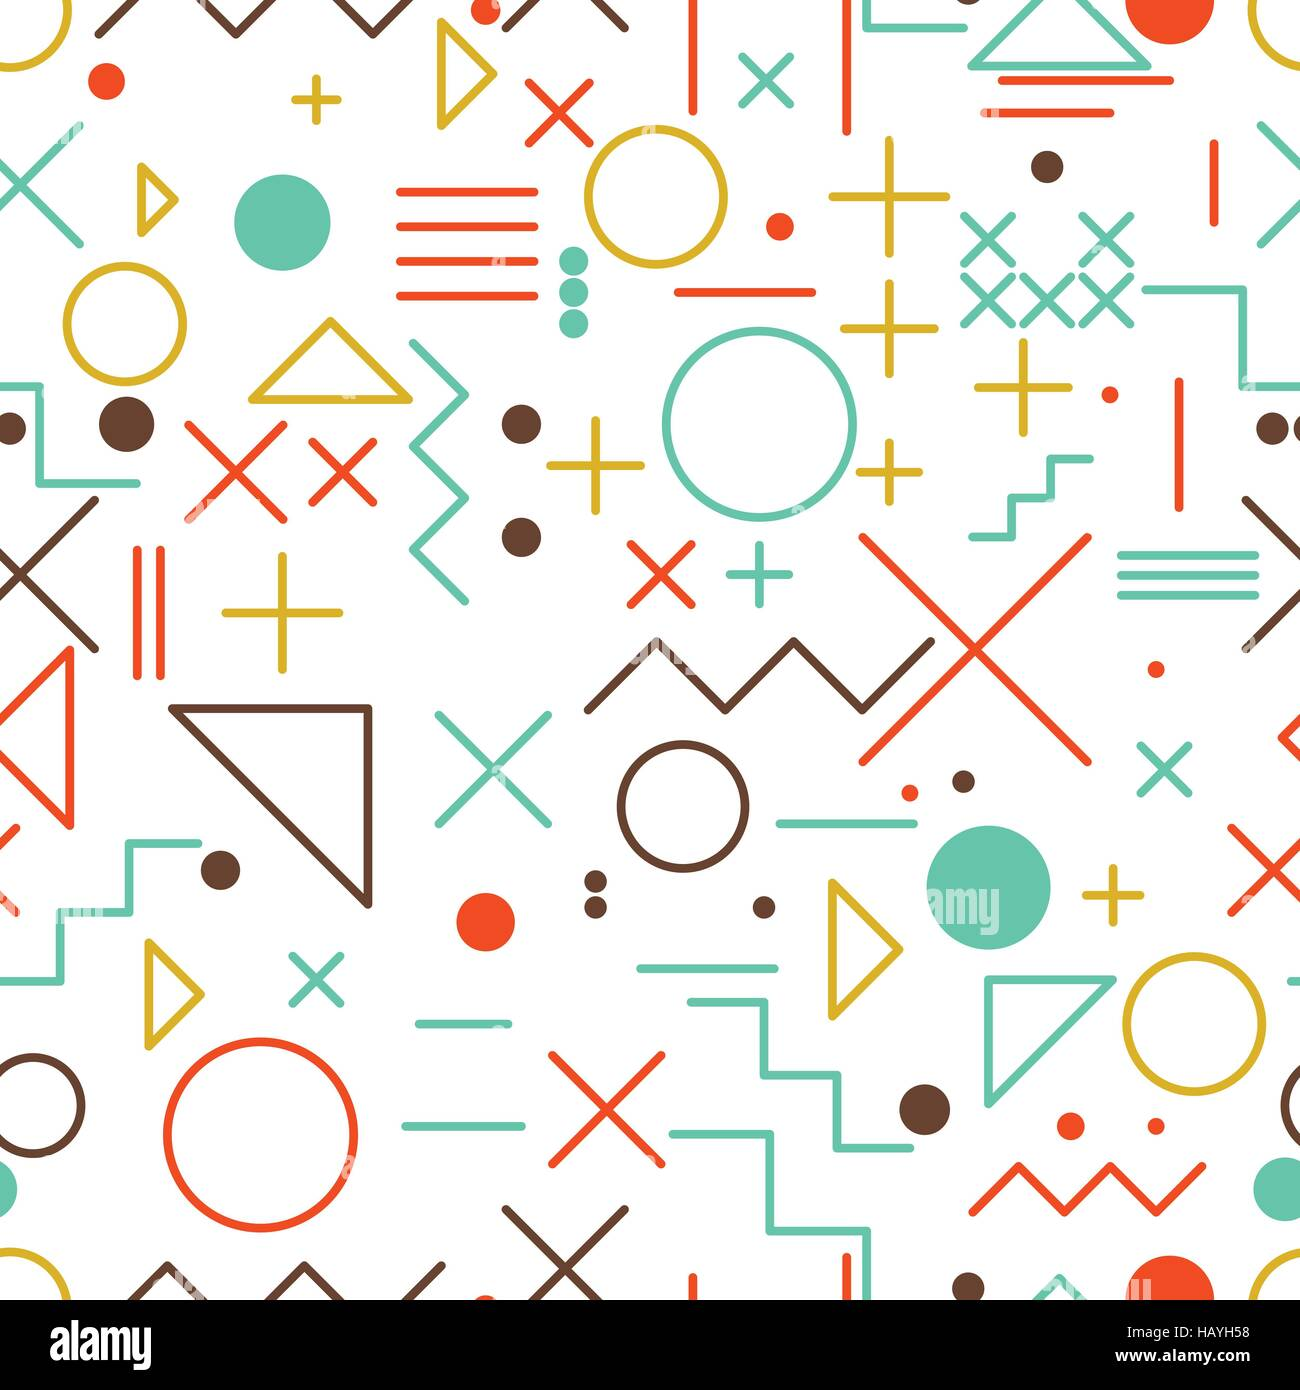 seamless math symbols vector background stock photos & seamless math